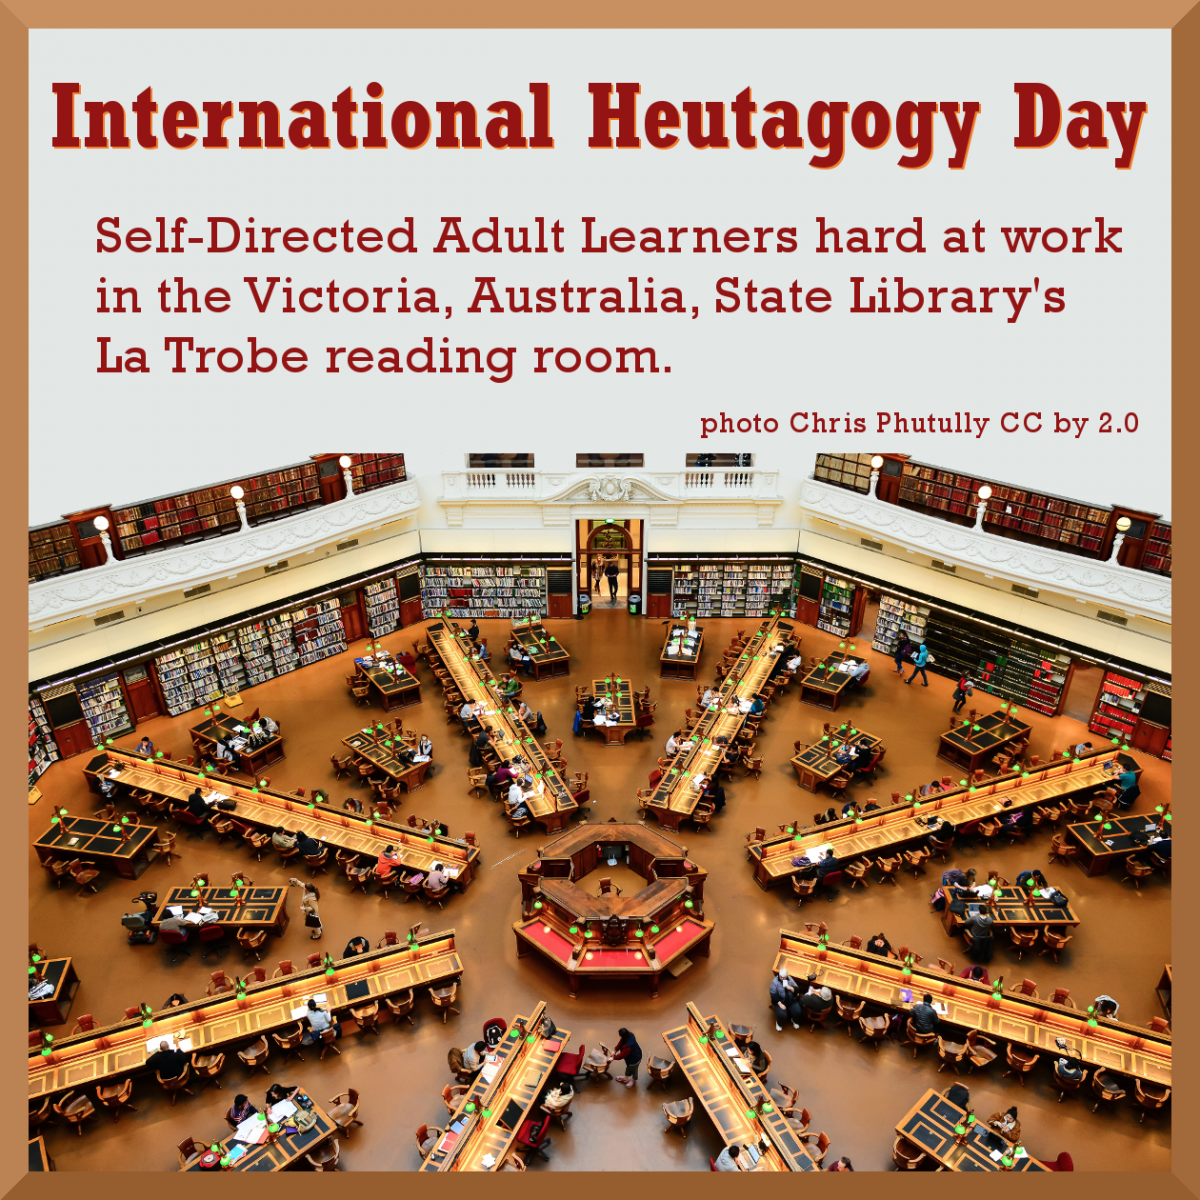 Self-Directed Adult Learners hard at work in Victoria, Australia, State Library's La Trobe reading room.